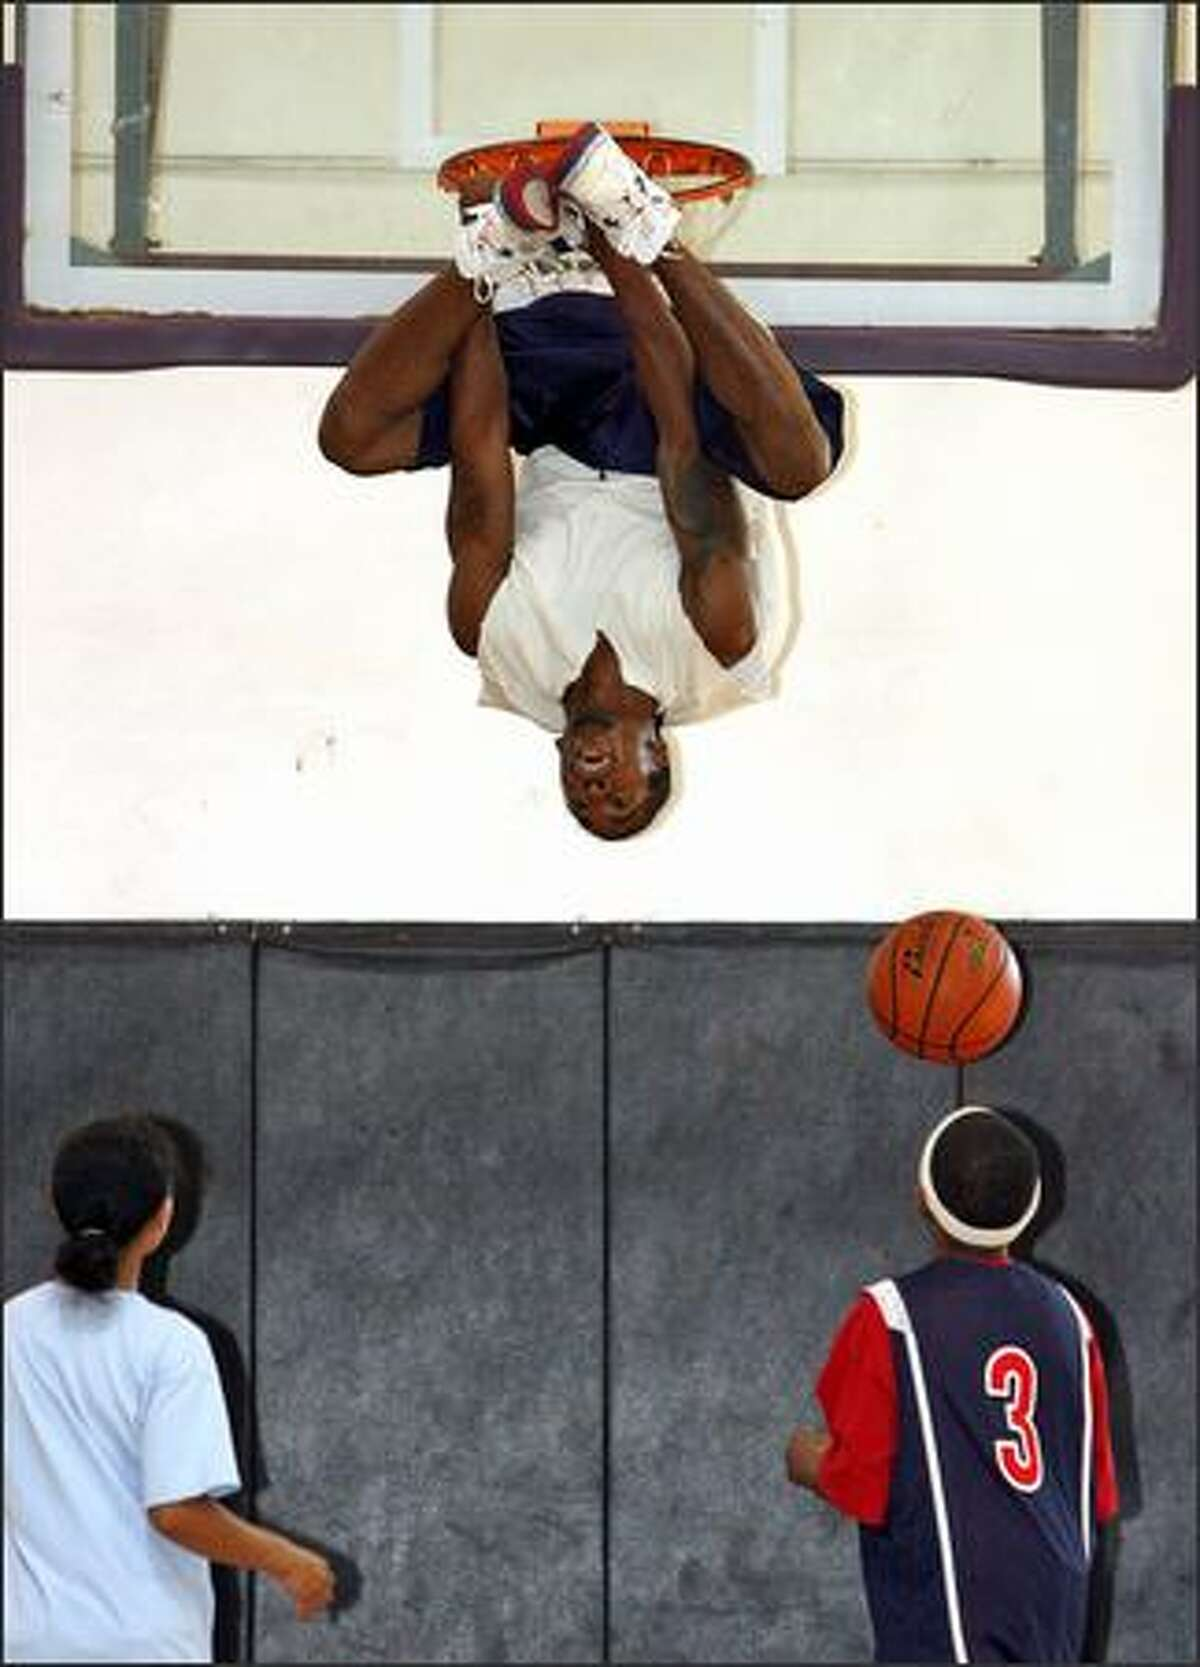 """""""Spyda"""" completes one of his signature inverted dunks for Myah Williams, 11, left, and Arell Hennings, 12, as the Ball4Real Streetball Tour visits the Rotary Boys and Girls Club in Seattle."""